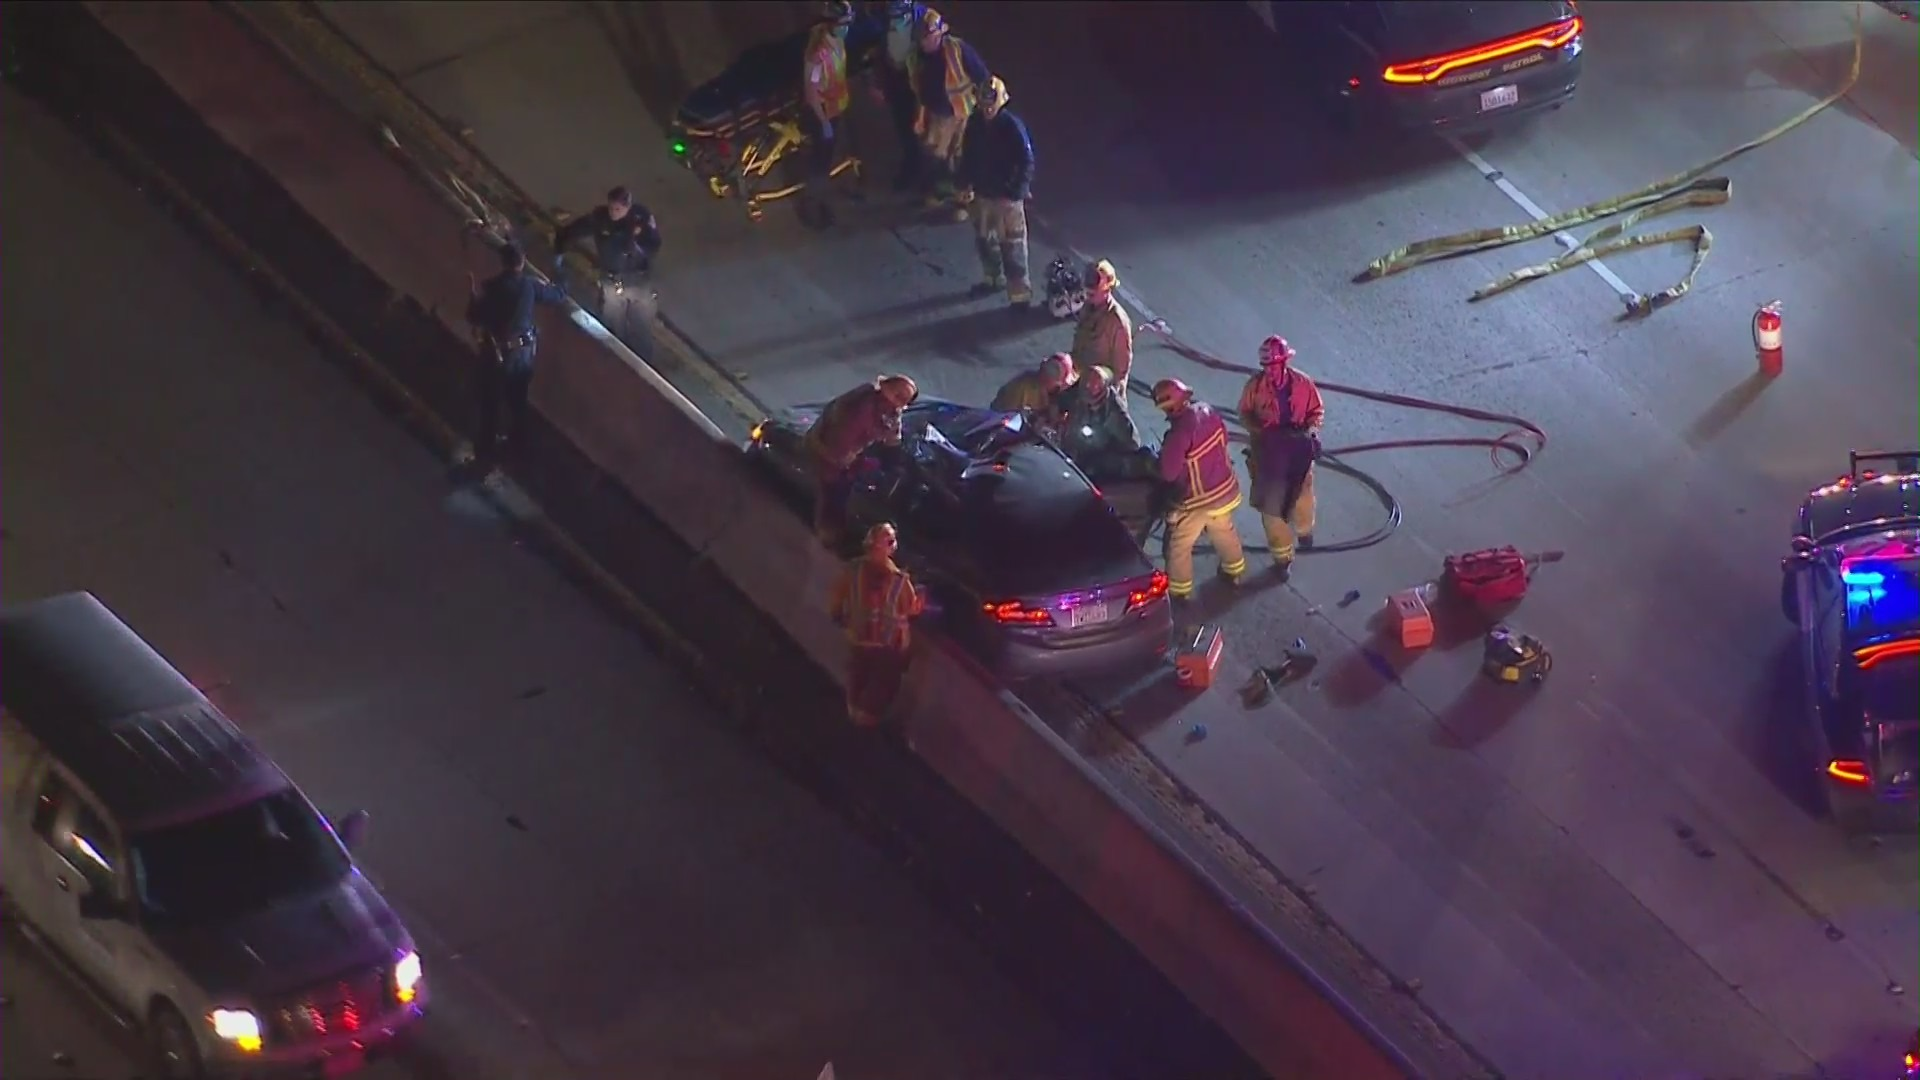 Emergency crews respond to an injury crash in East Los Angeles on Nov. 24, 2020. (KTLA)